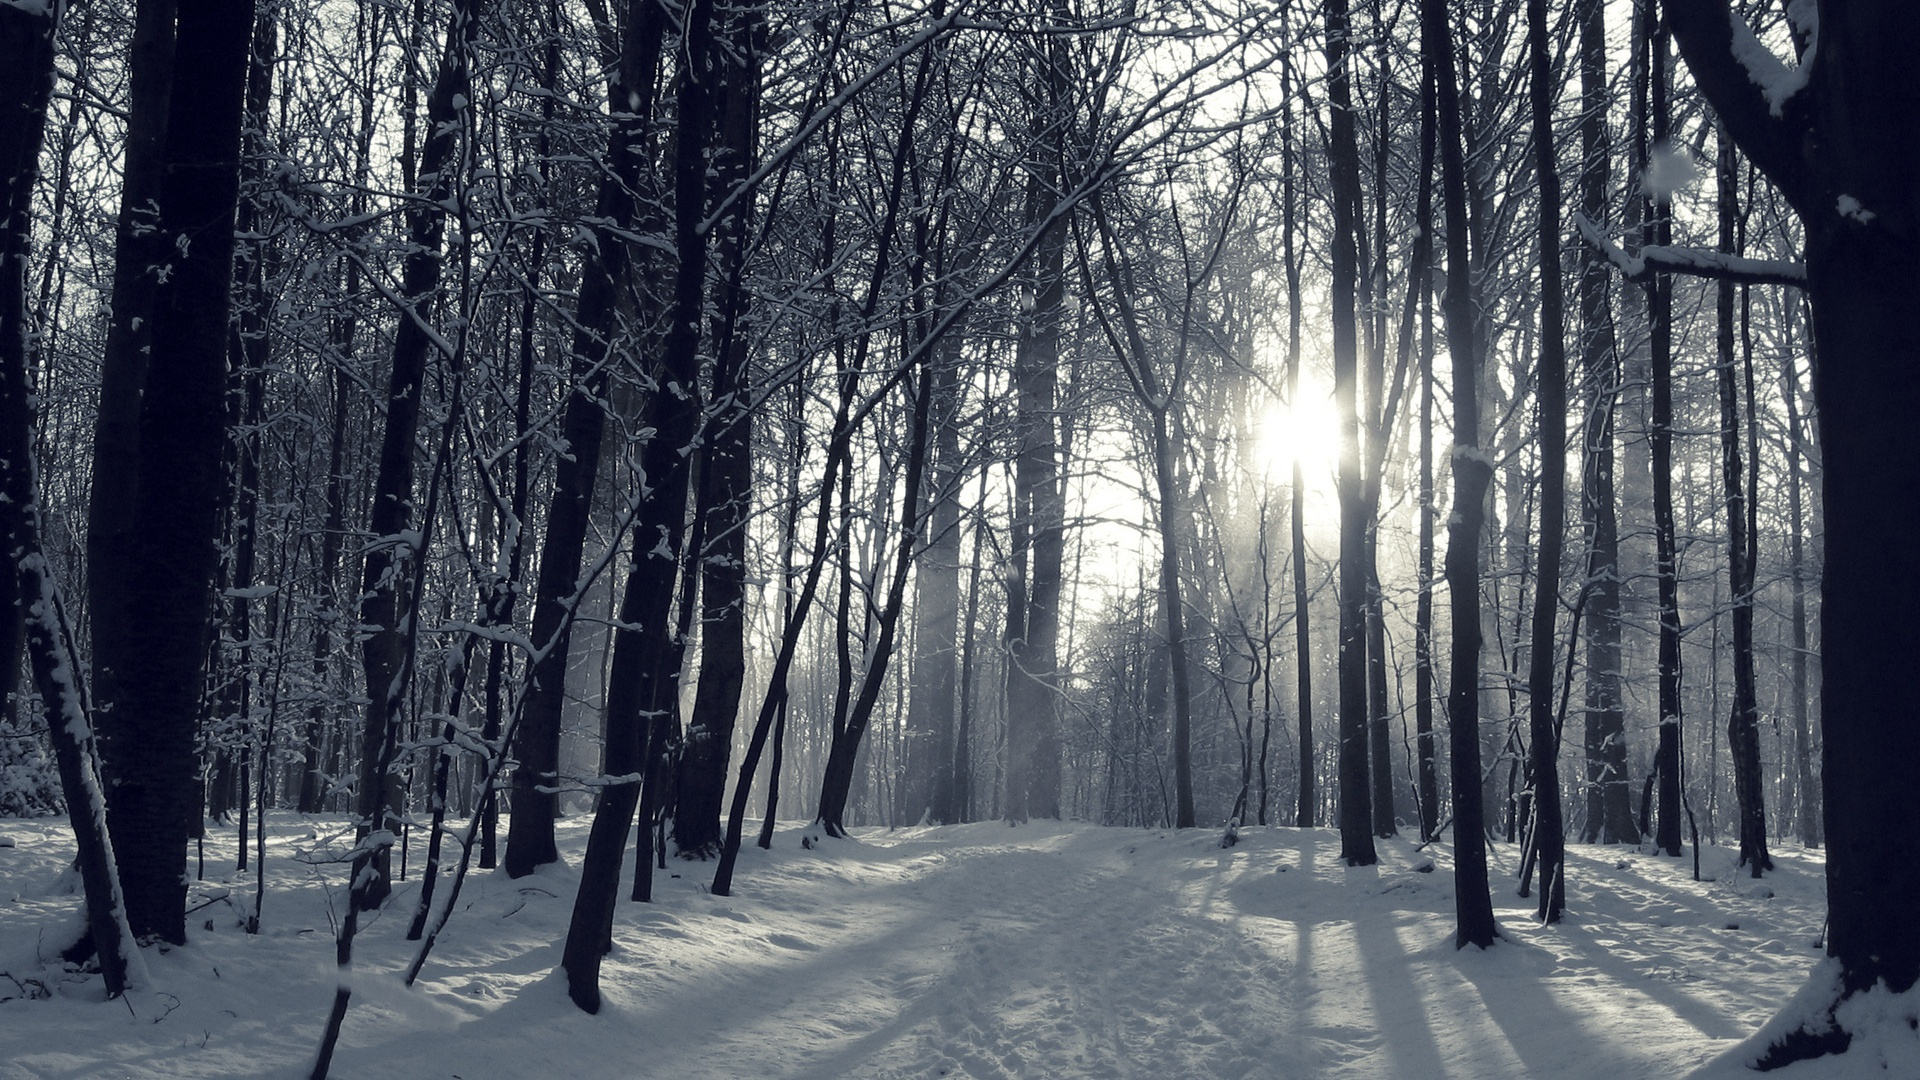 Snowy Winter Forest Wallpapers   1920x1080   1064989 1920x1080